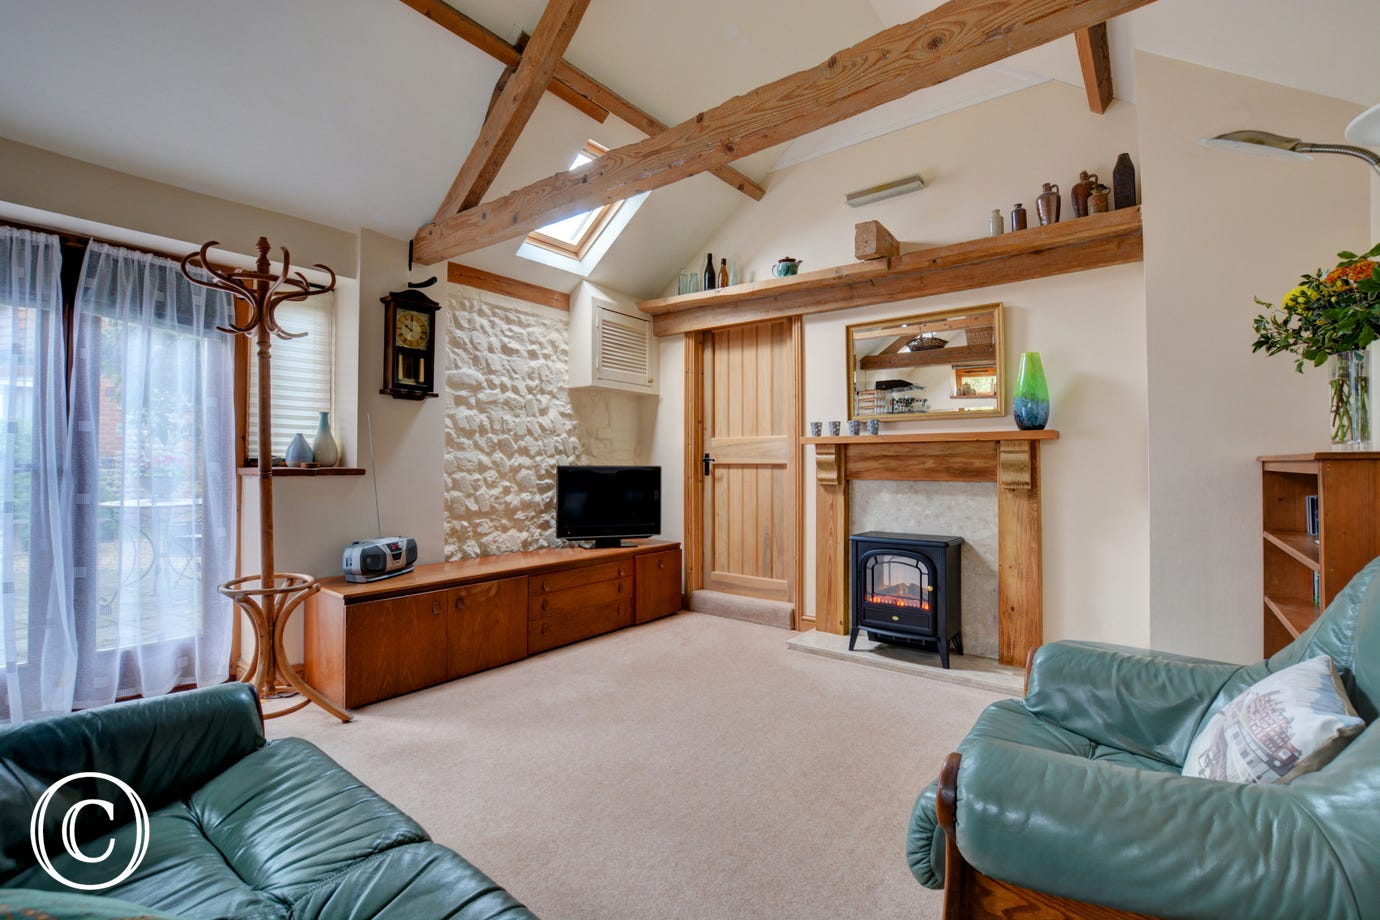 Another view of the sitting room showing the feature fireplace & TV.